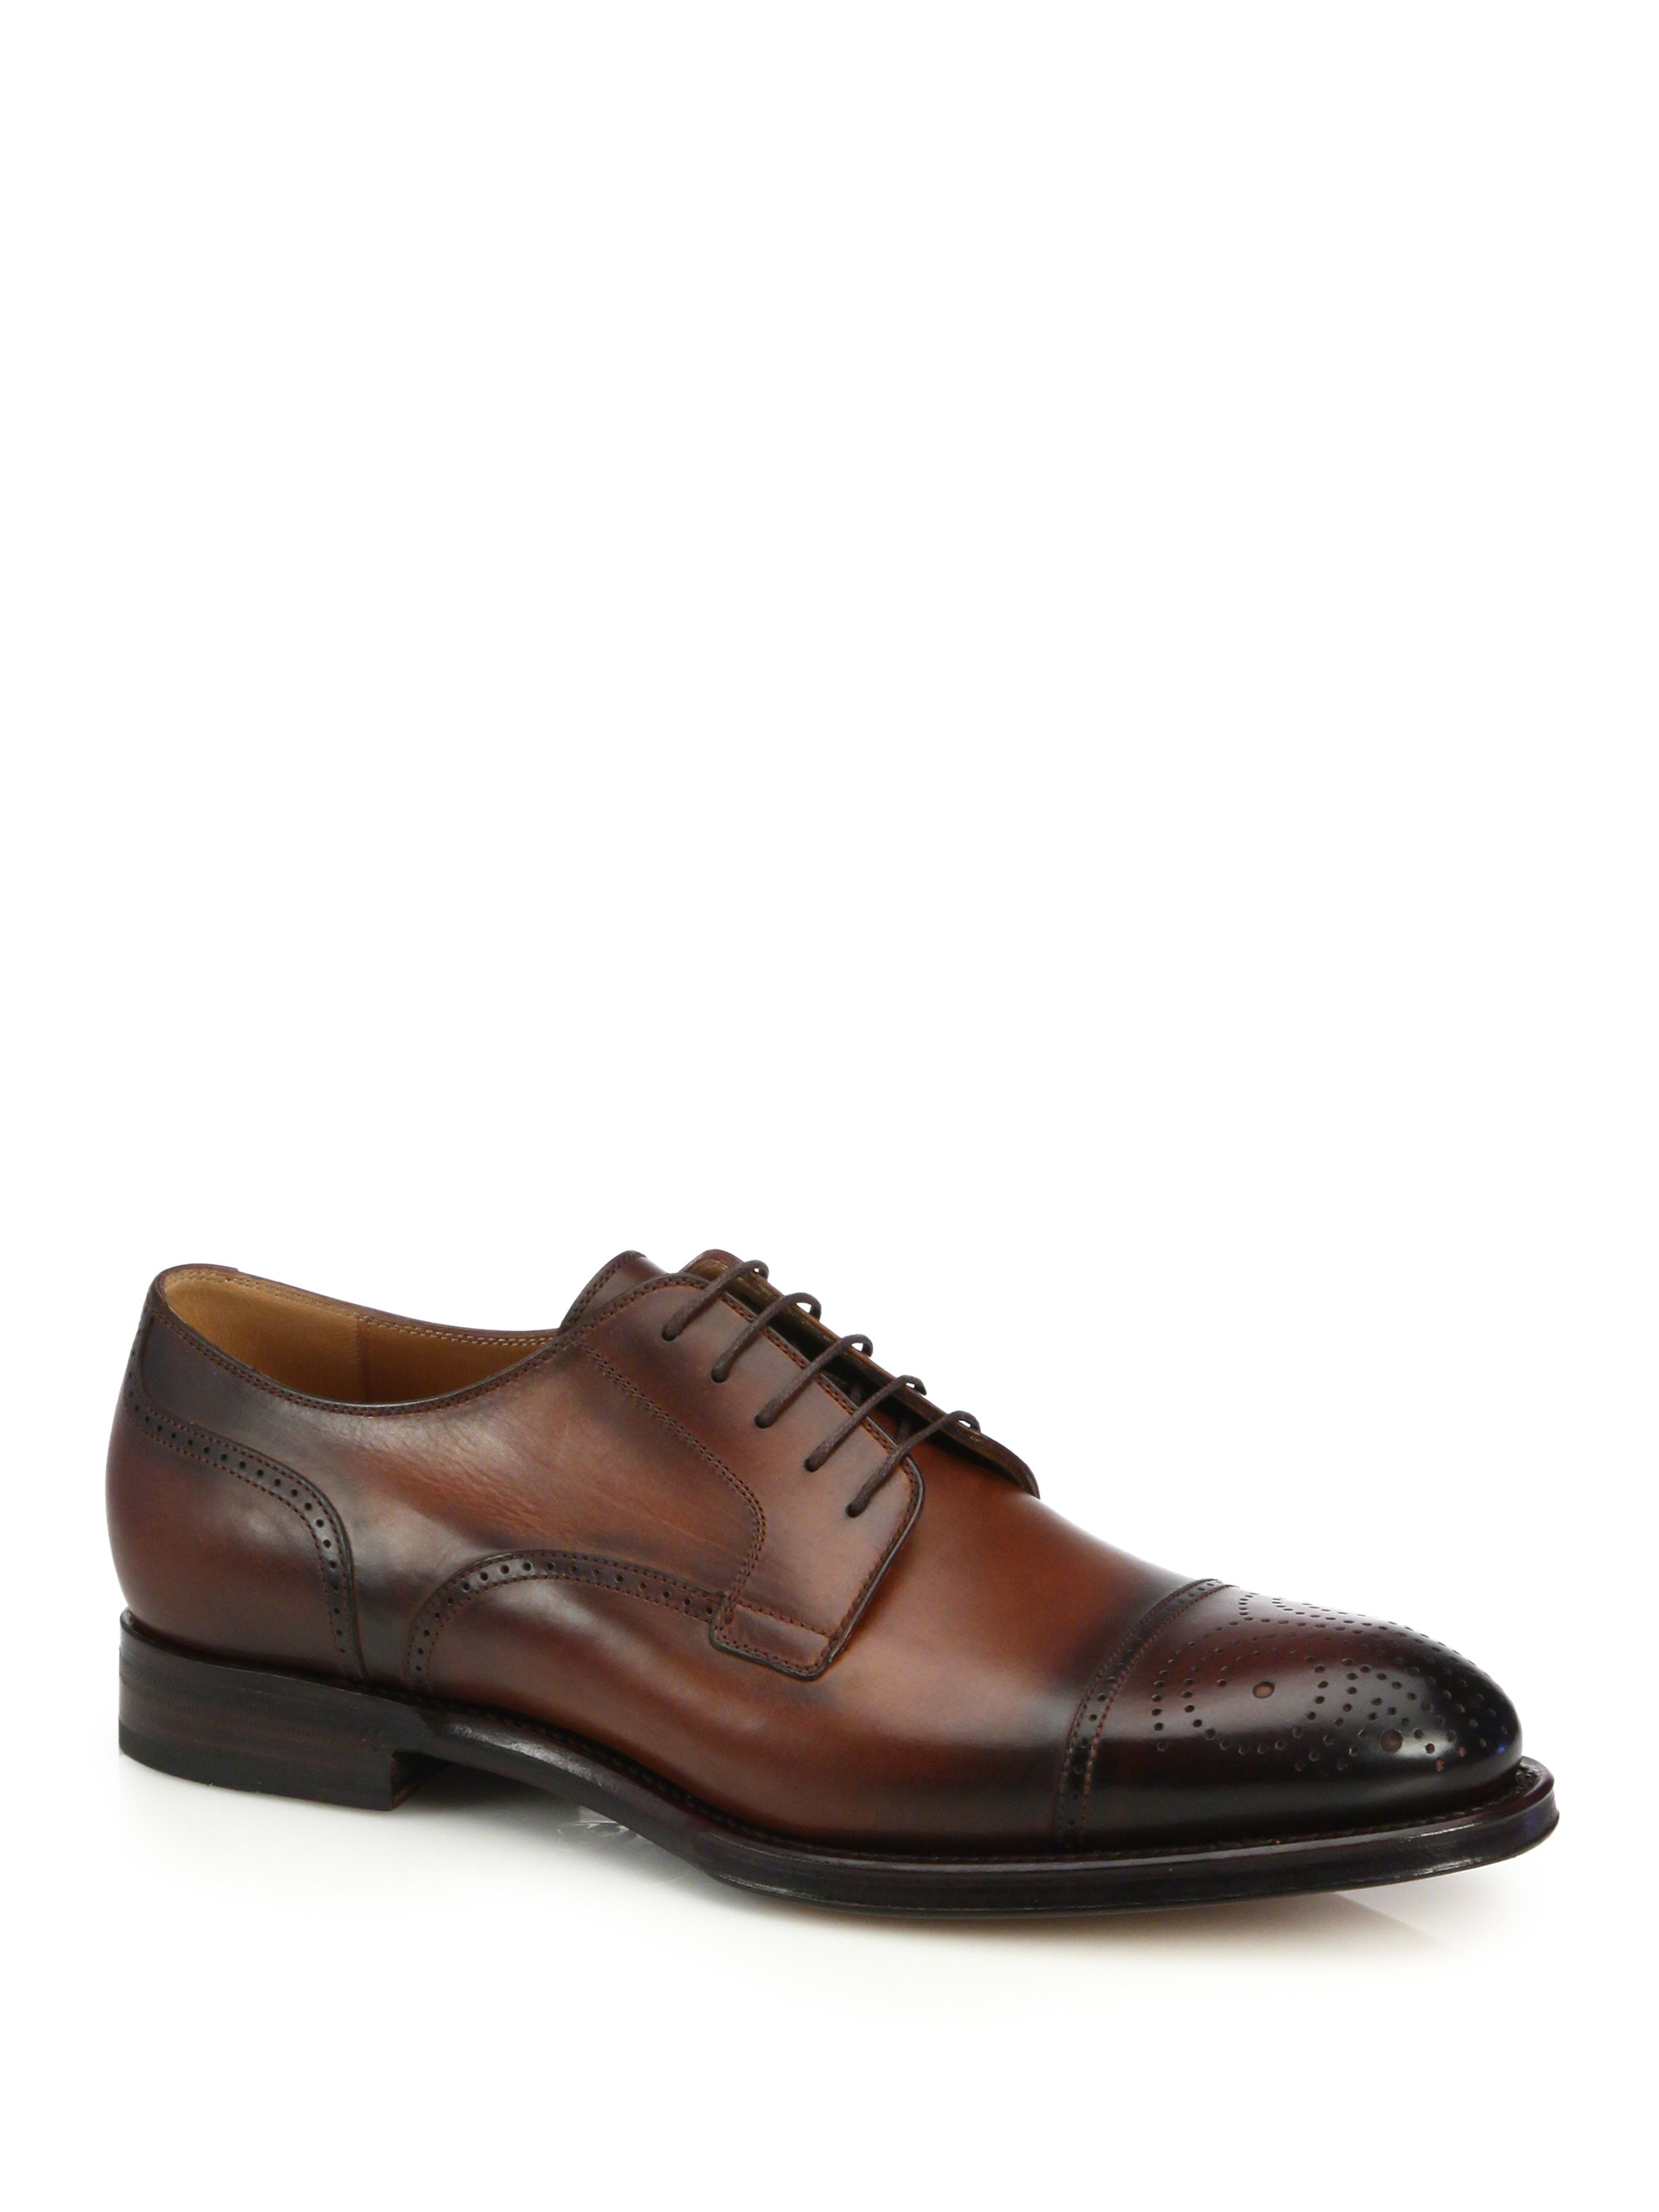 gucci perforated leather derby shoes in brown for lyst